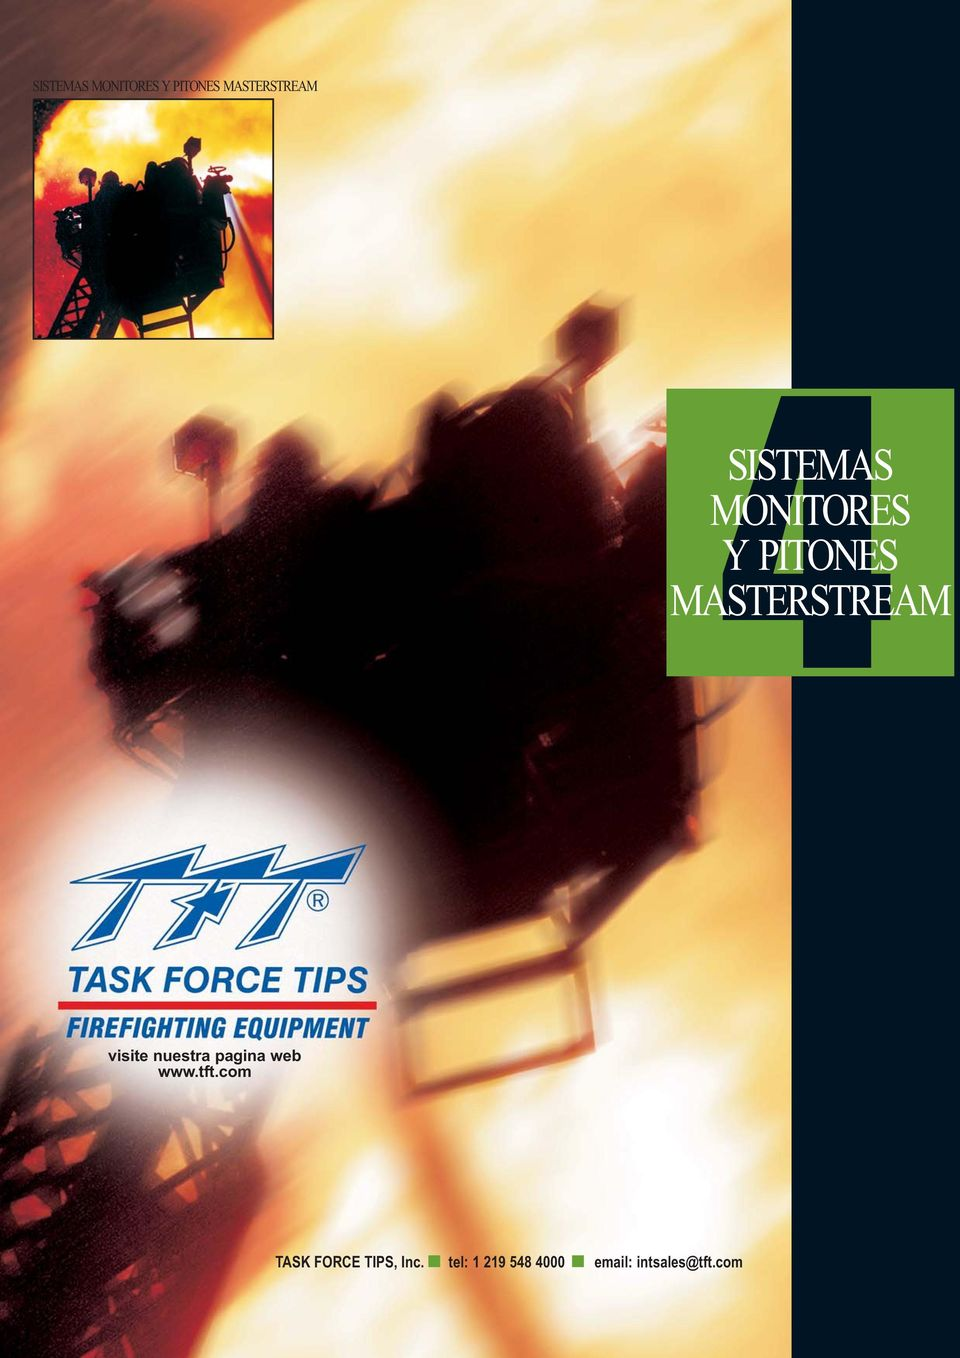 com TASK FORCE TIPS, Inc.